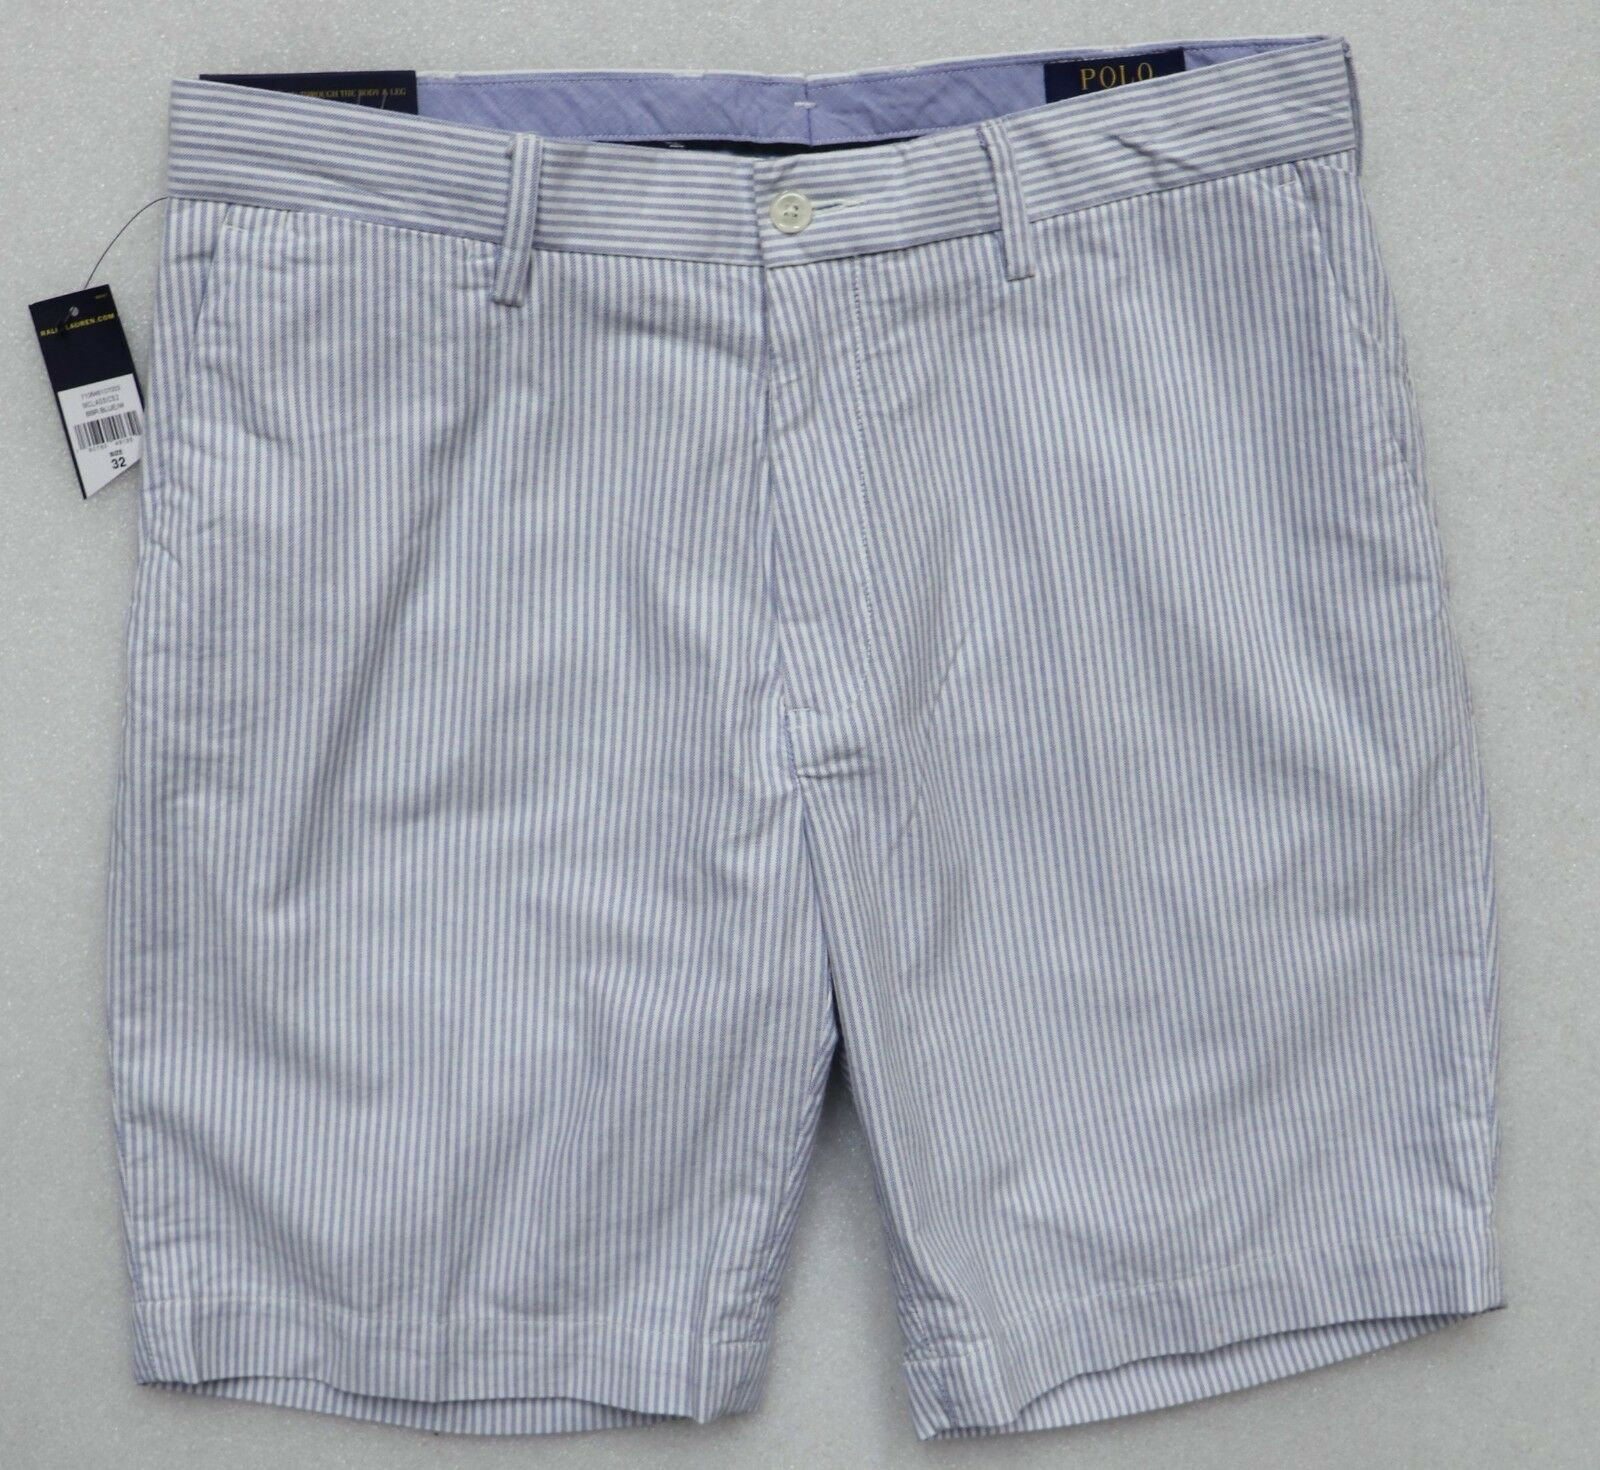 ROT GELB WEIß Stretch HOTPANTS Pump Ballon Chino SHORTS HOSE Gr.32 34 XS